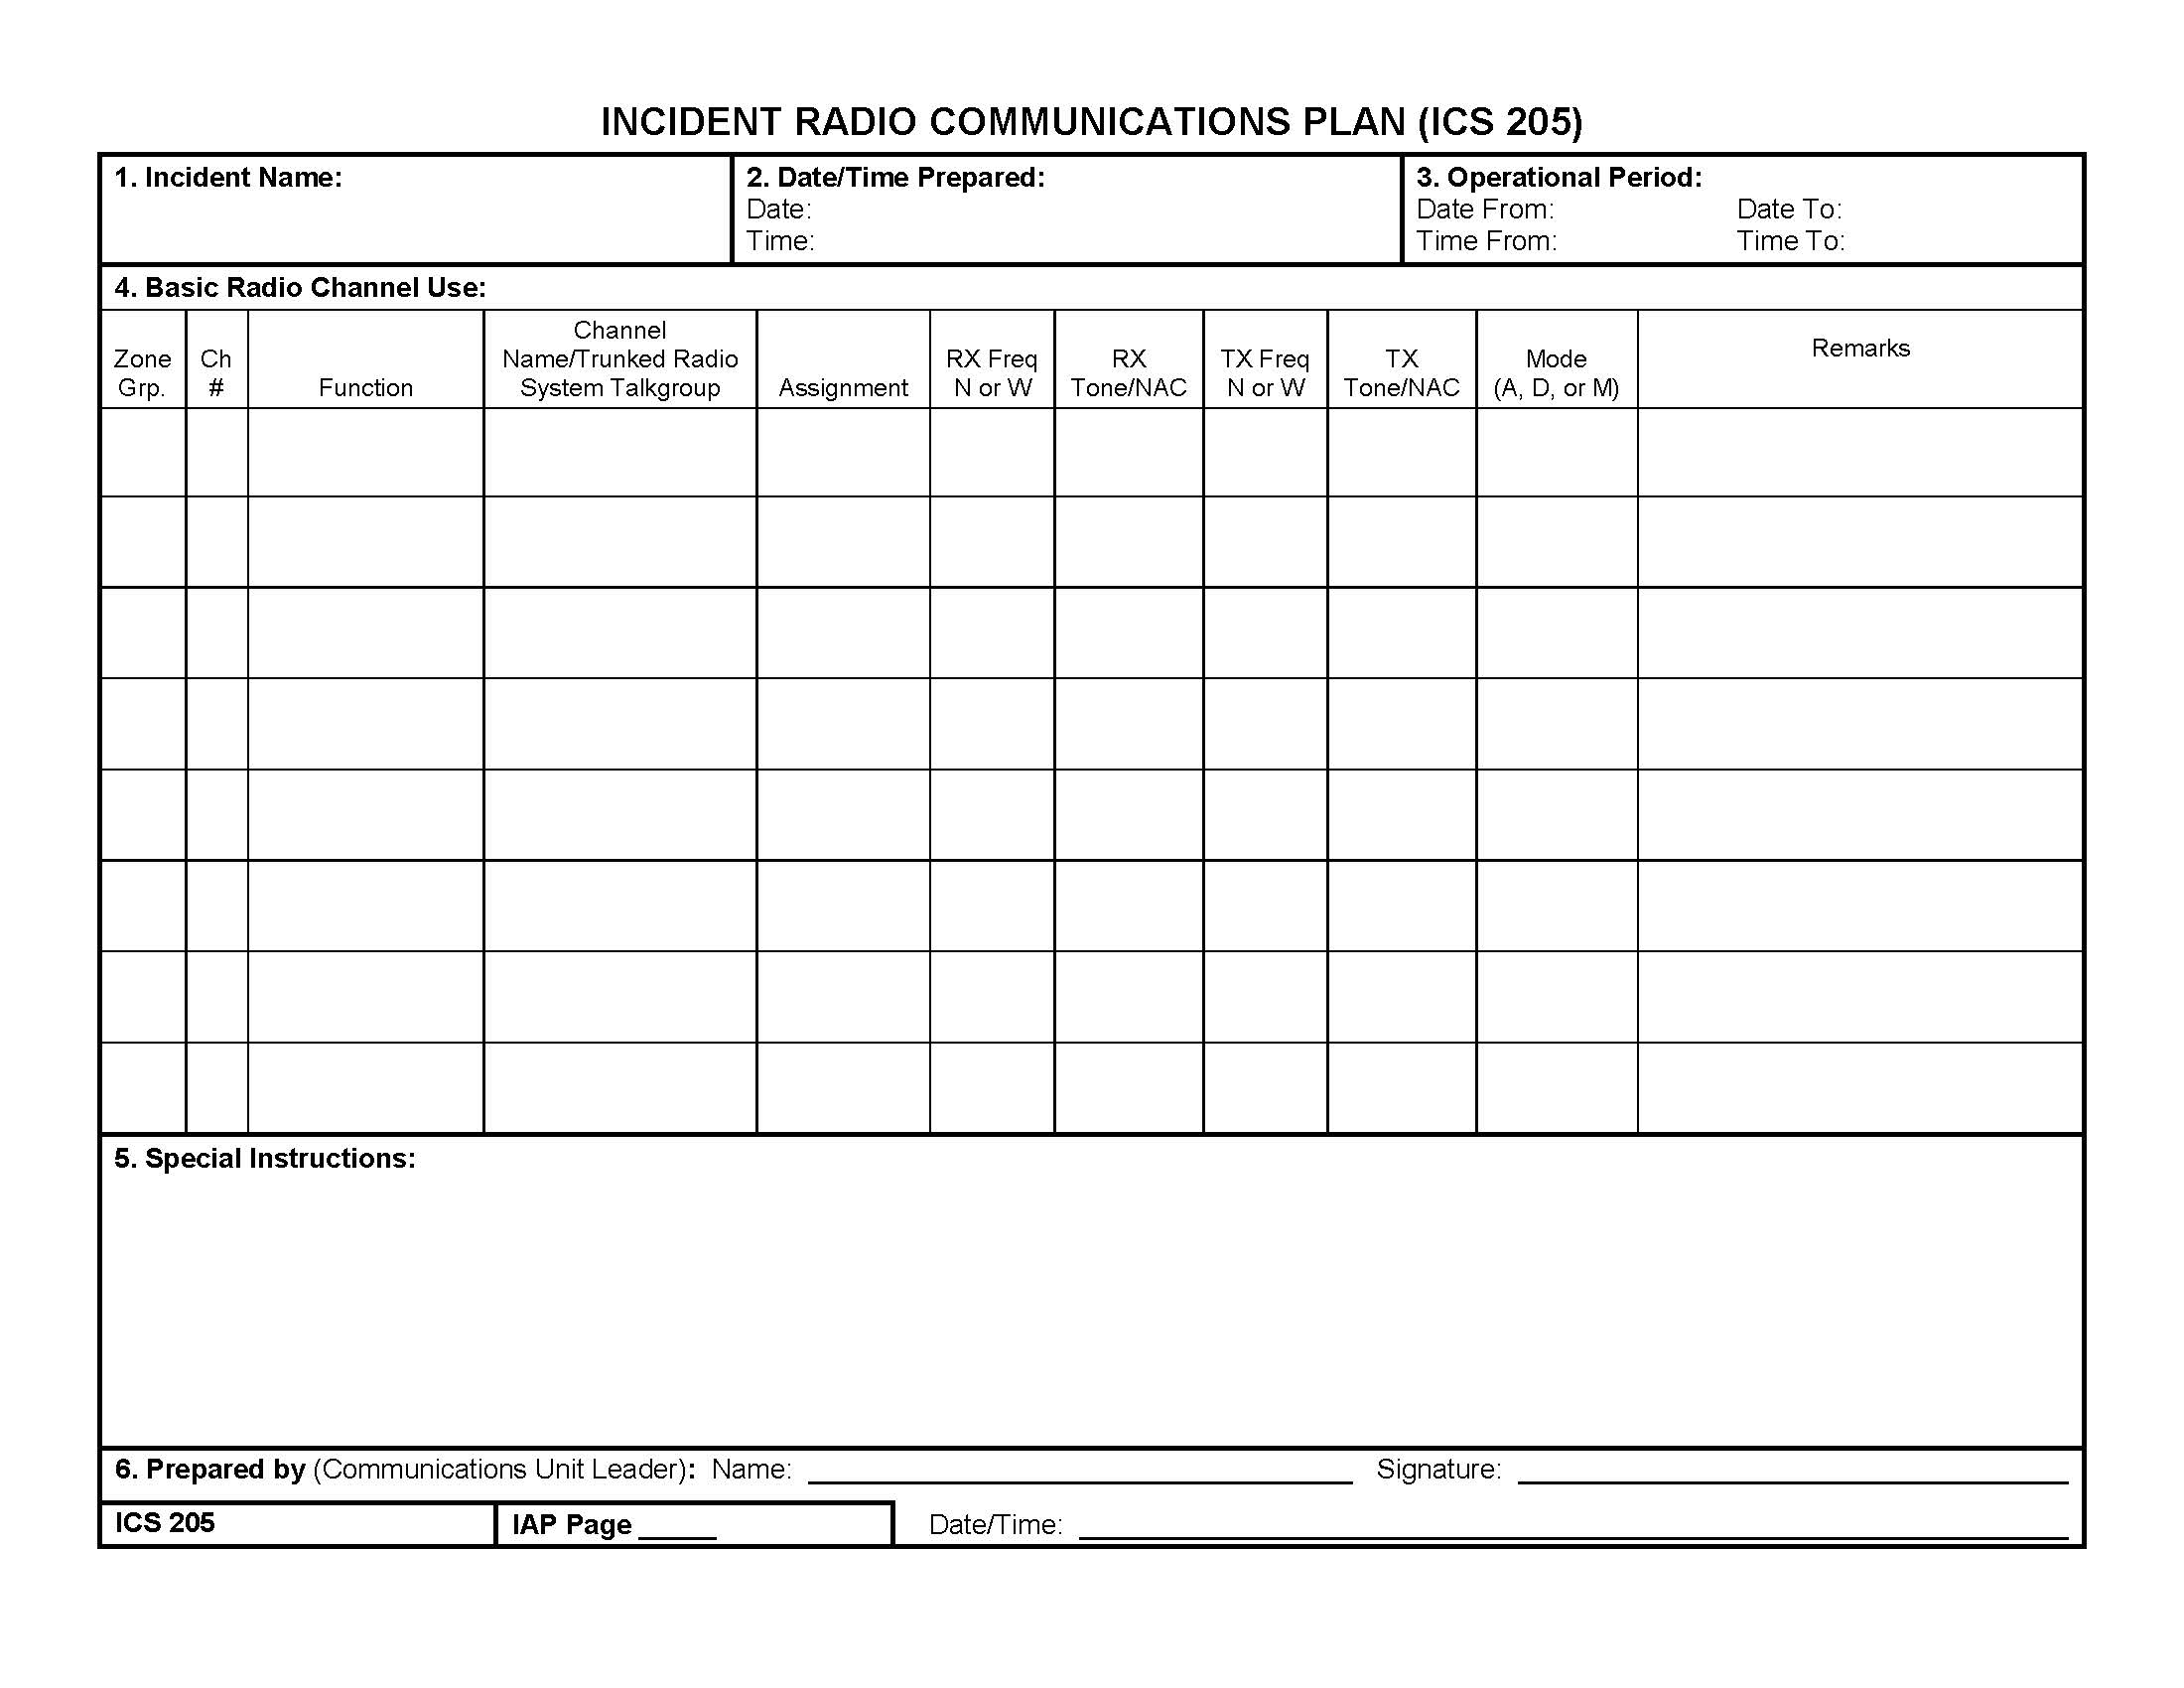 ICS 205 Radio Communications Plan